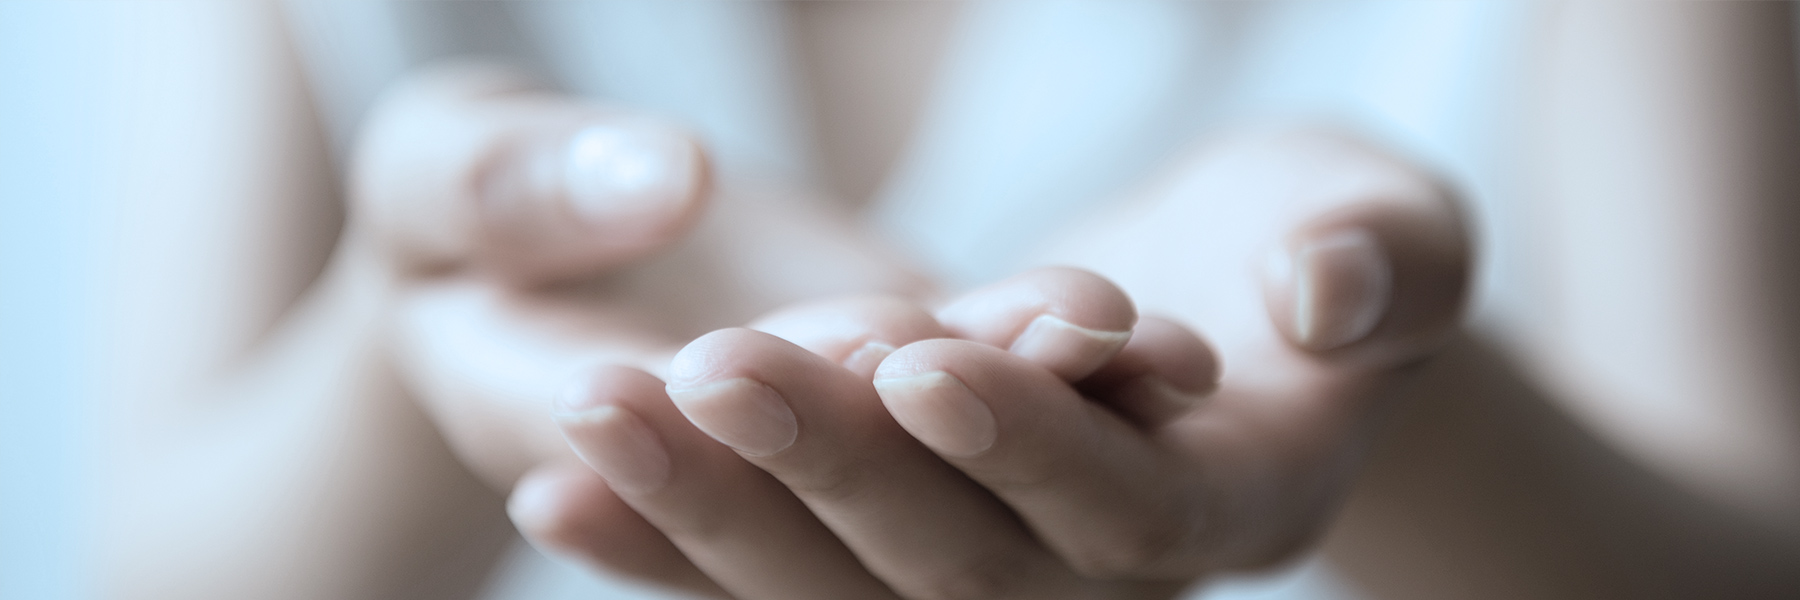 GuidedChoice: Charitable Giving Open Hands